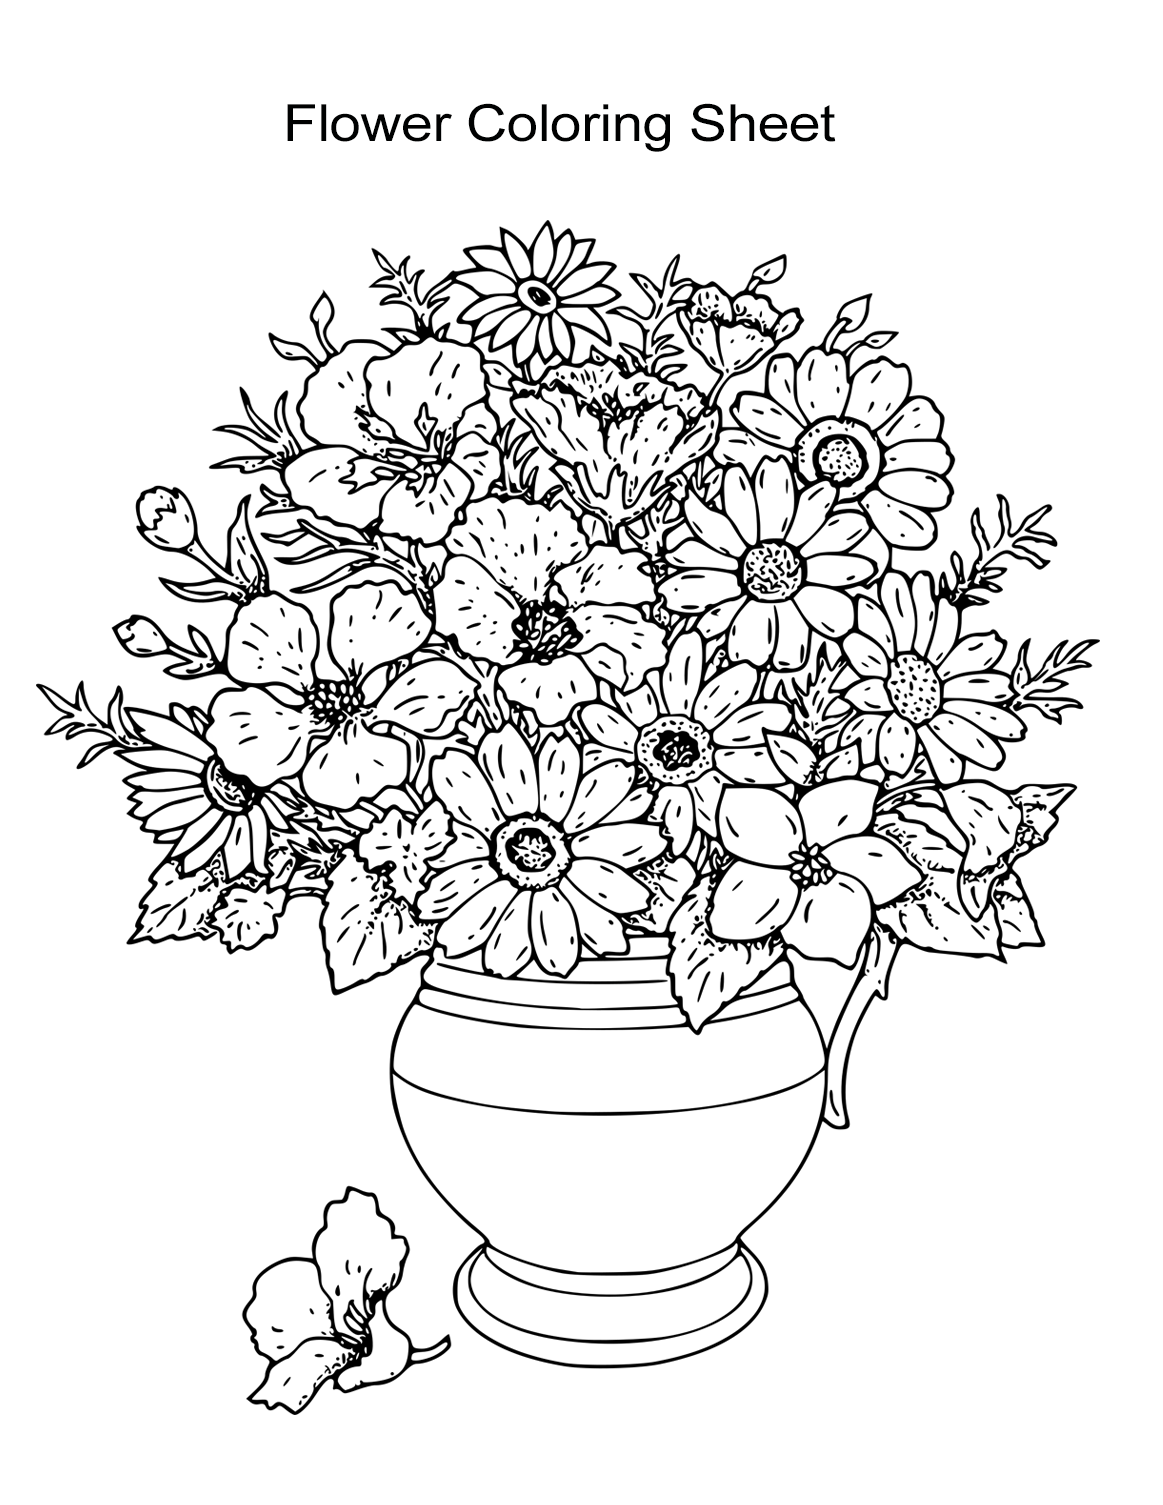 colouring pictures of flowers flowers coloring pages coloringpages1001com colouring flowers of pictures